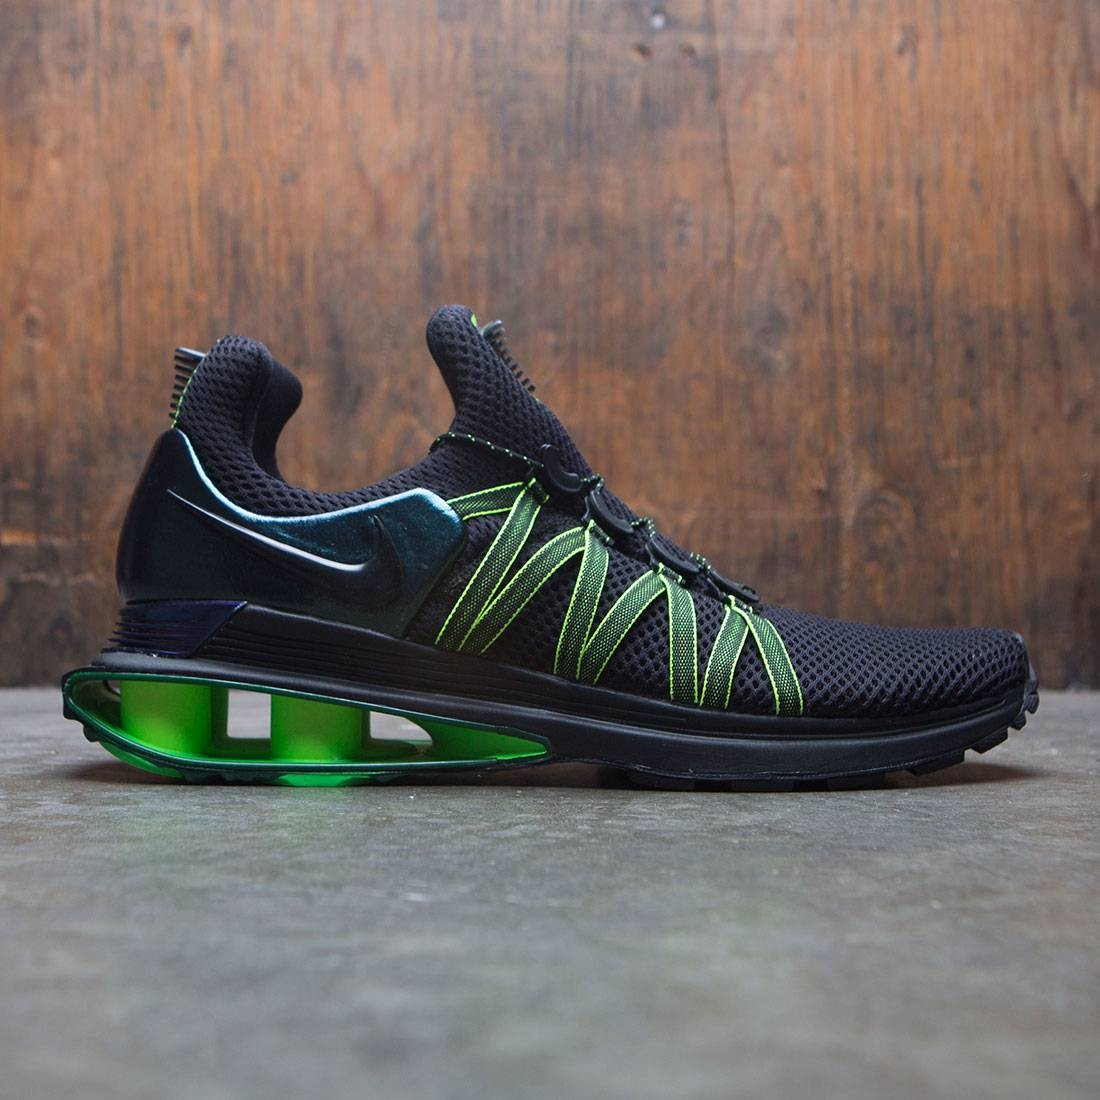 check out 4a544 11fcb nike men shox gravity black black gorge green hot lime